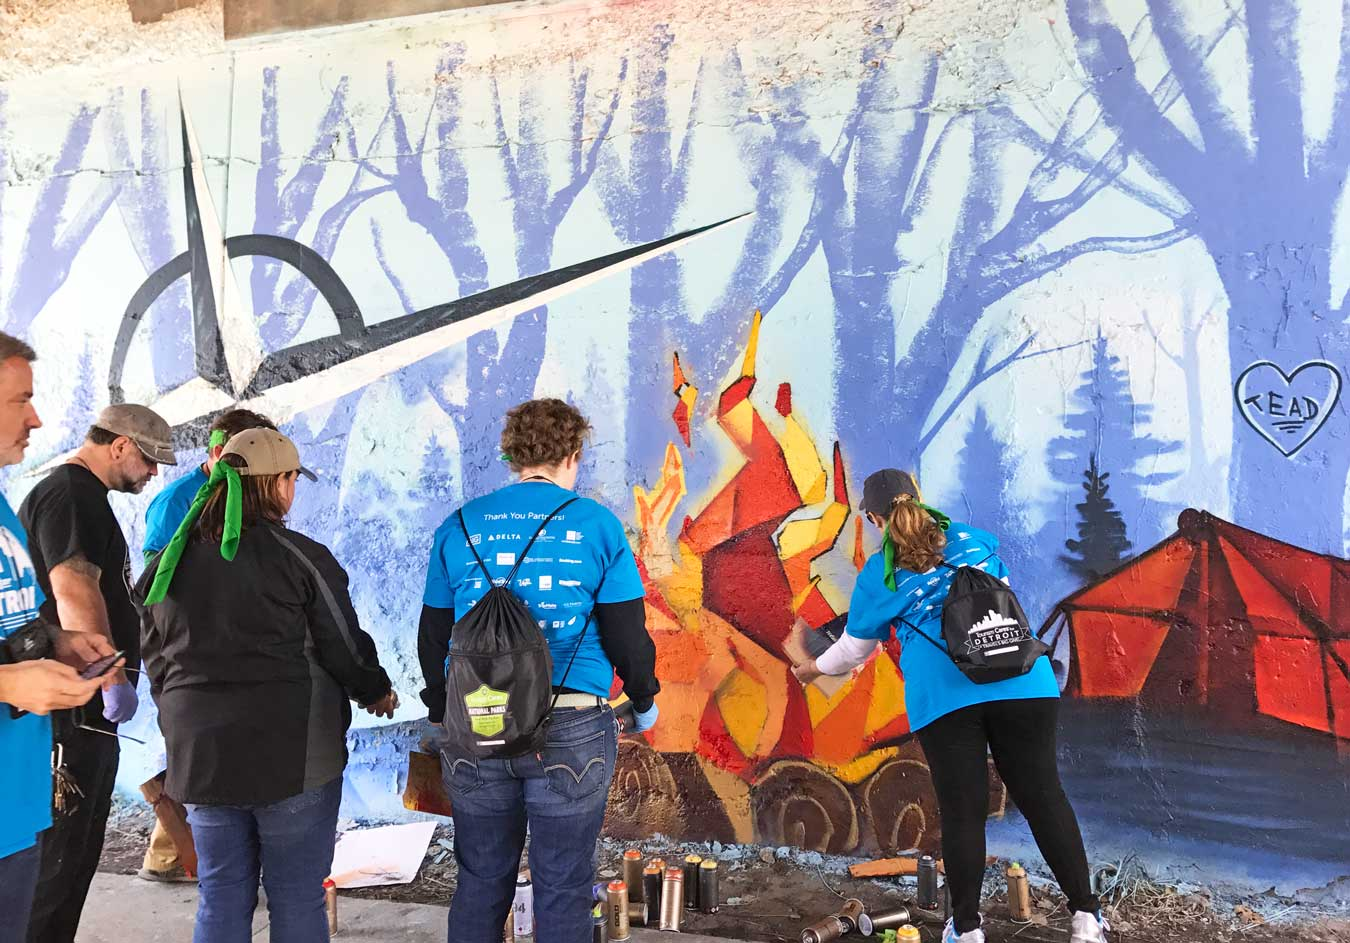 Tourism Cares For Detroit: Graffiti For A Cause (via Wading in Big Shoes) - Graffiti mural in Lincoln Art Park by Fel3000ft and a team of travel & tourism volunteers. Click through to learn more about the mural and revitalization efforts in Detroit!